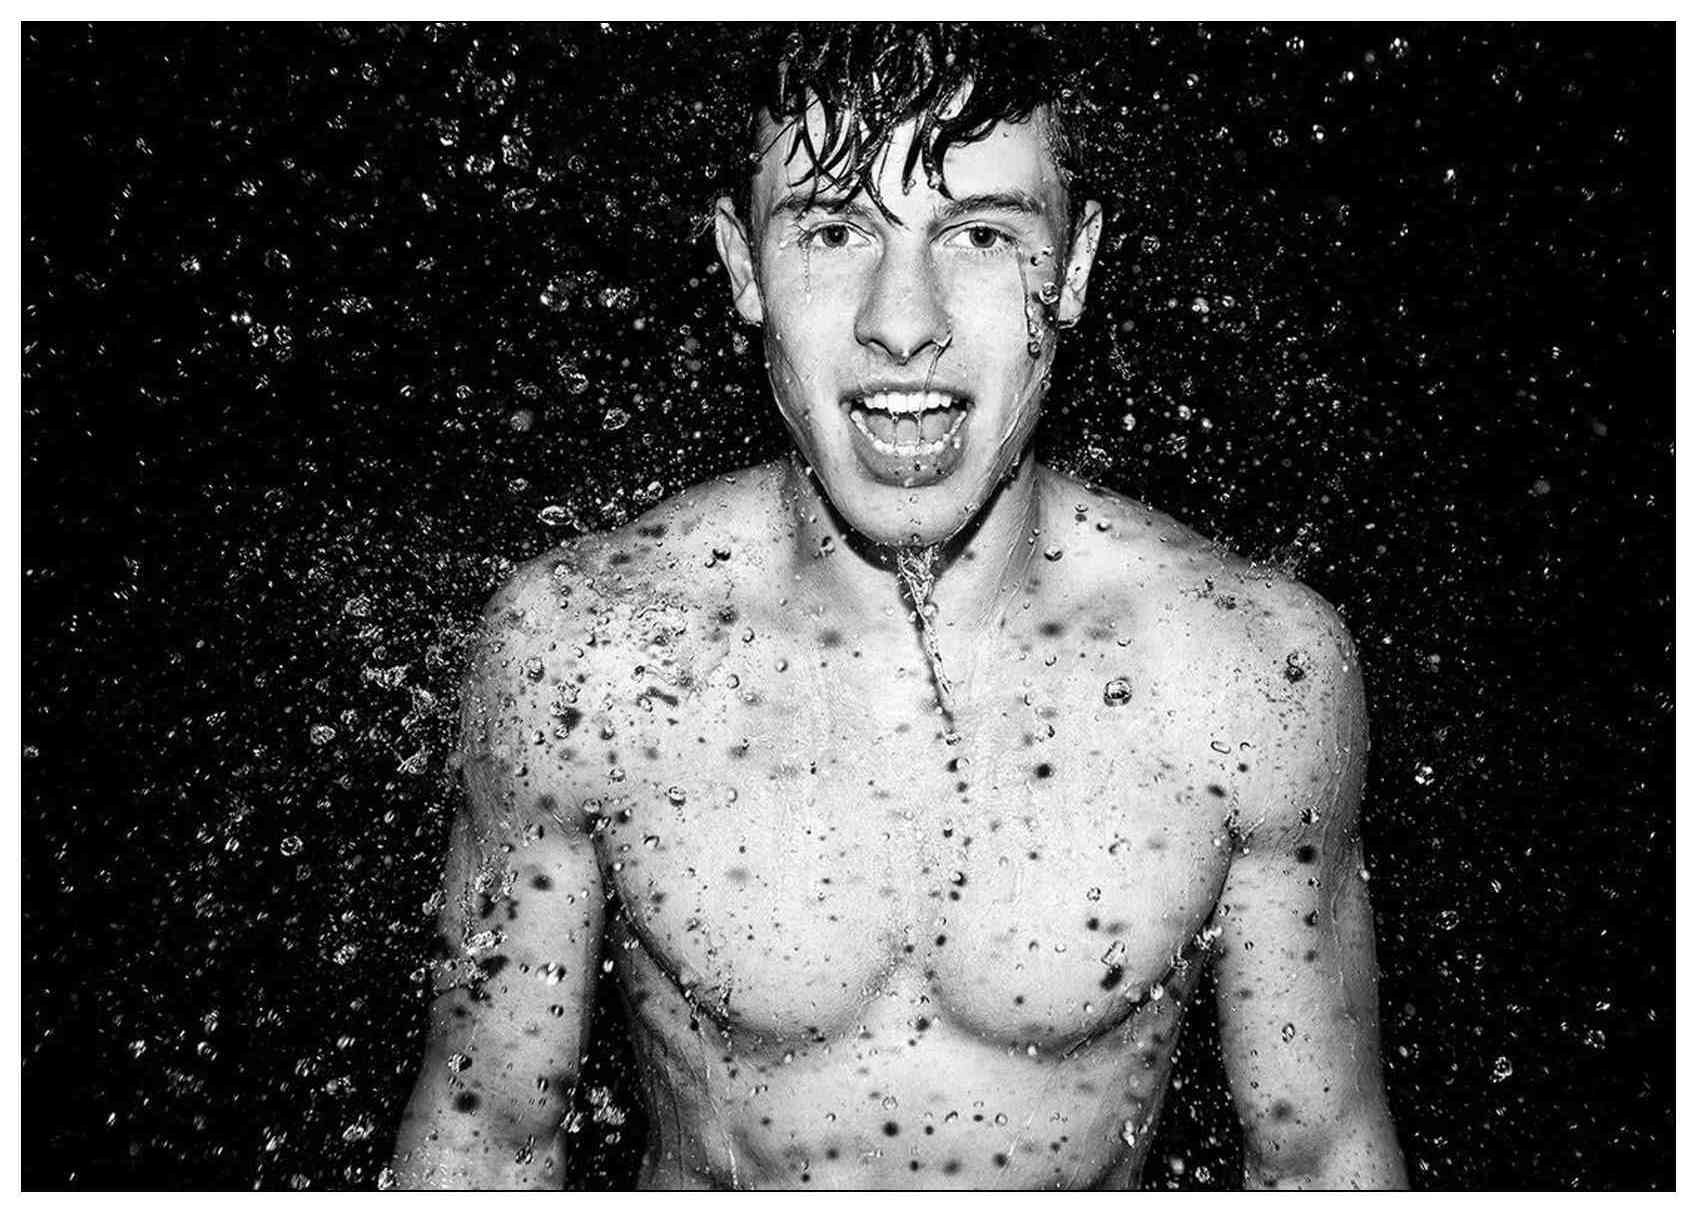 Singer Shawn Mendes Posters And Prints Posters Coated Paper Painting Home Dining Room Decor Clear Image Wallpaper